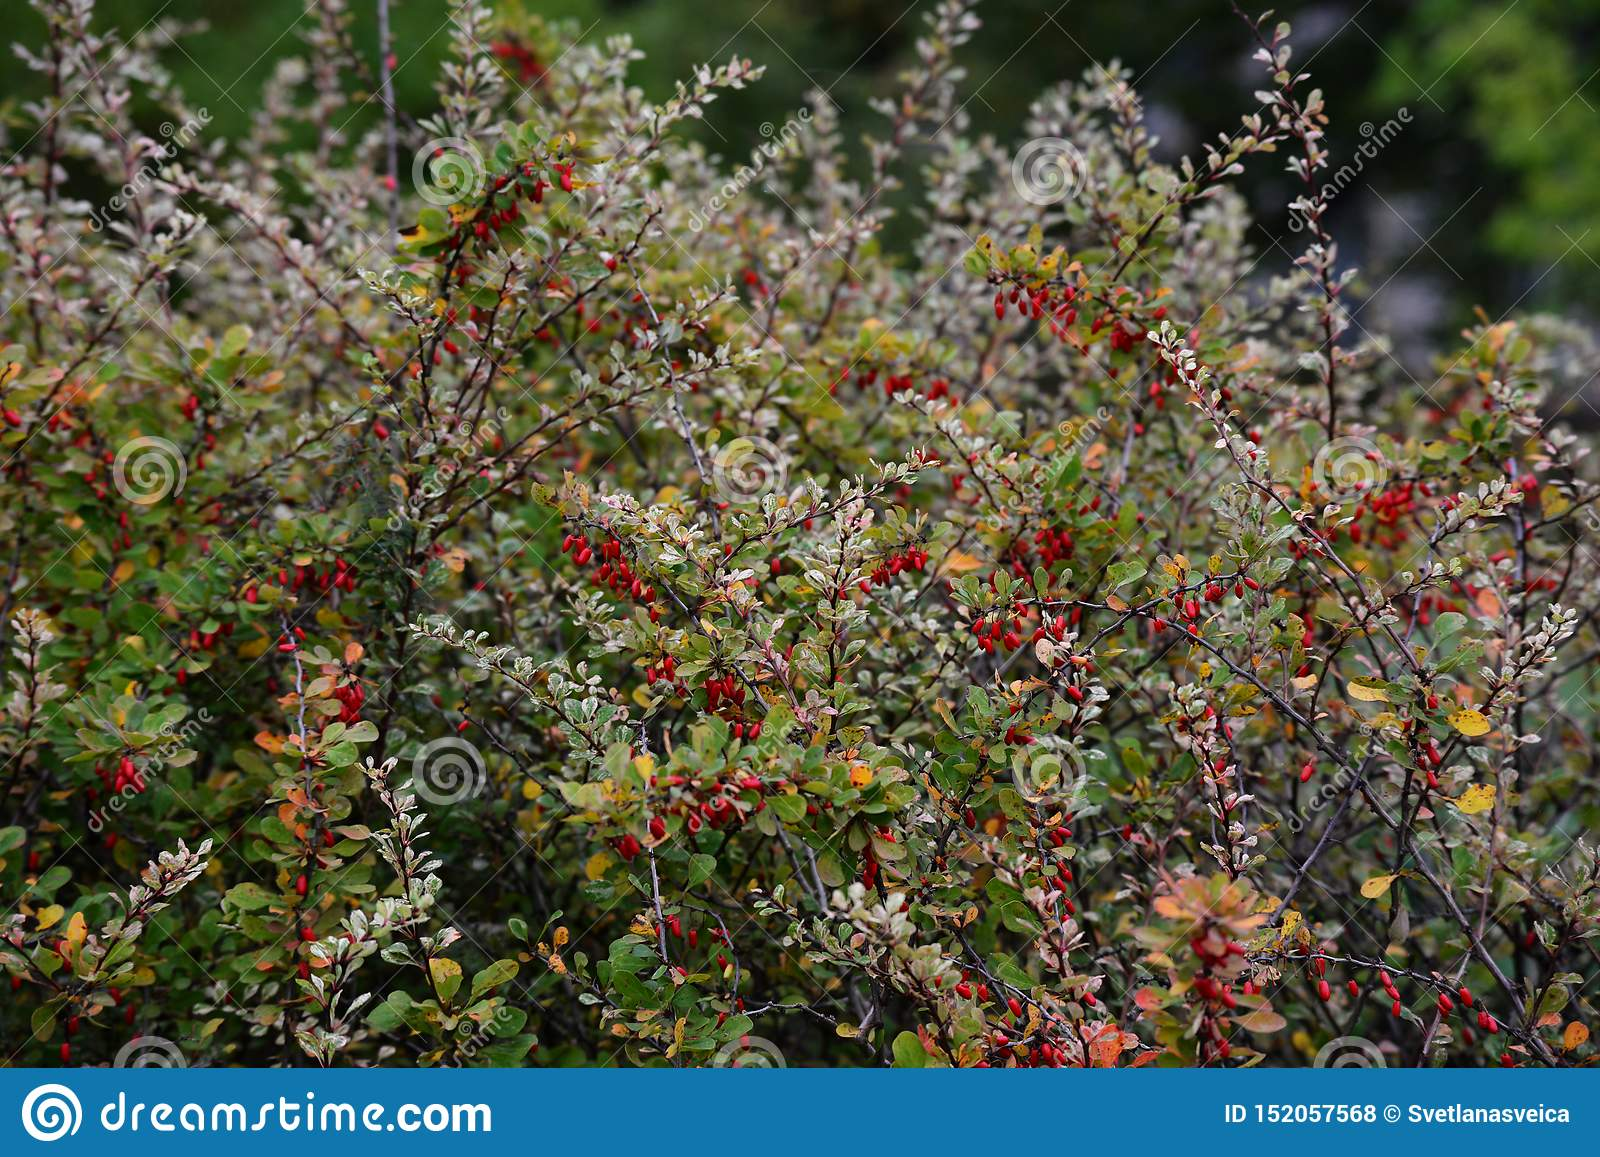 Red barberry berries on a bush with green orange yellow autumn leaves. Berberis thunbergii